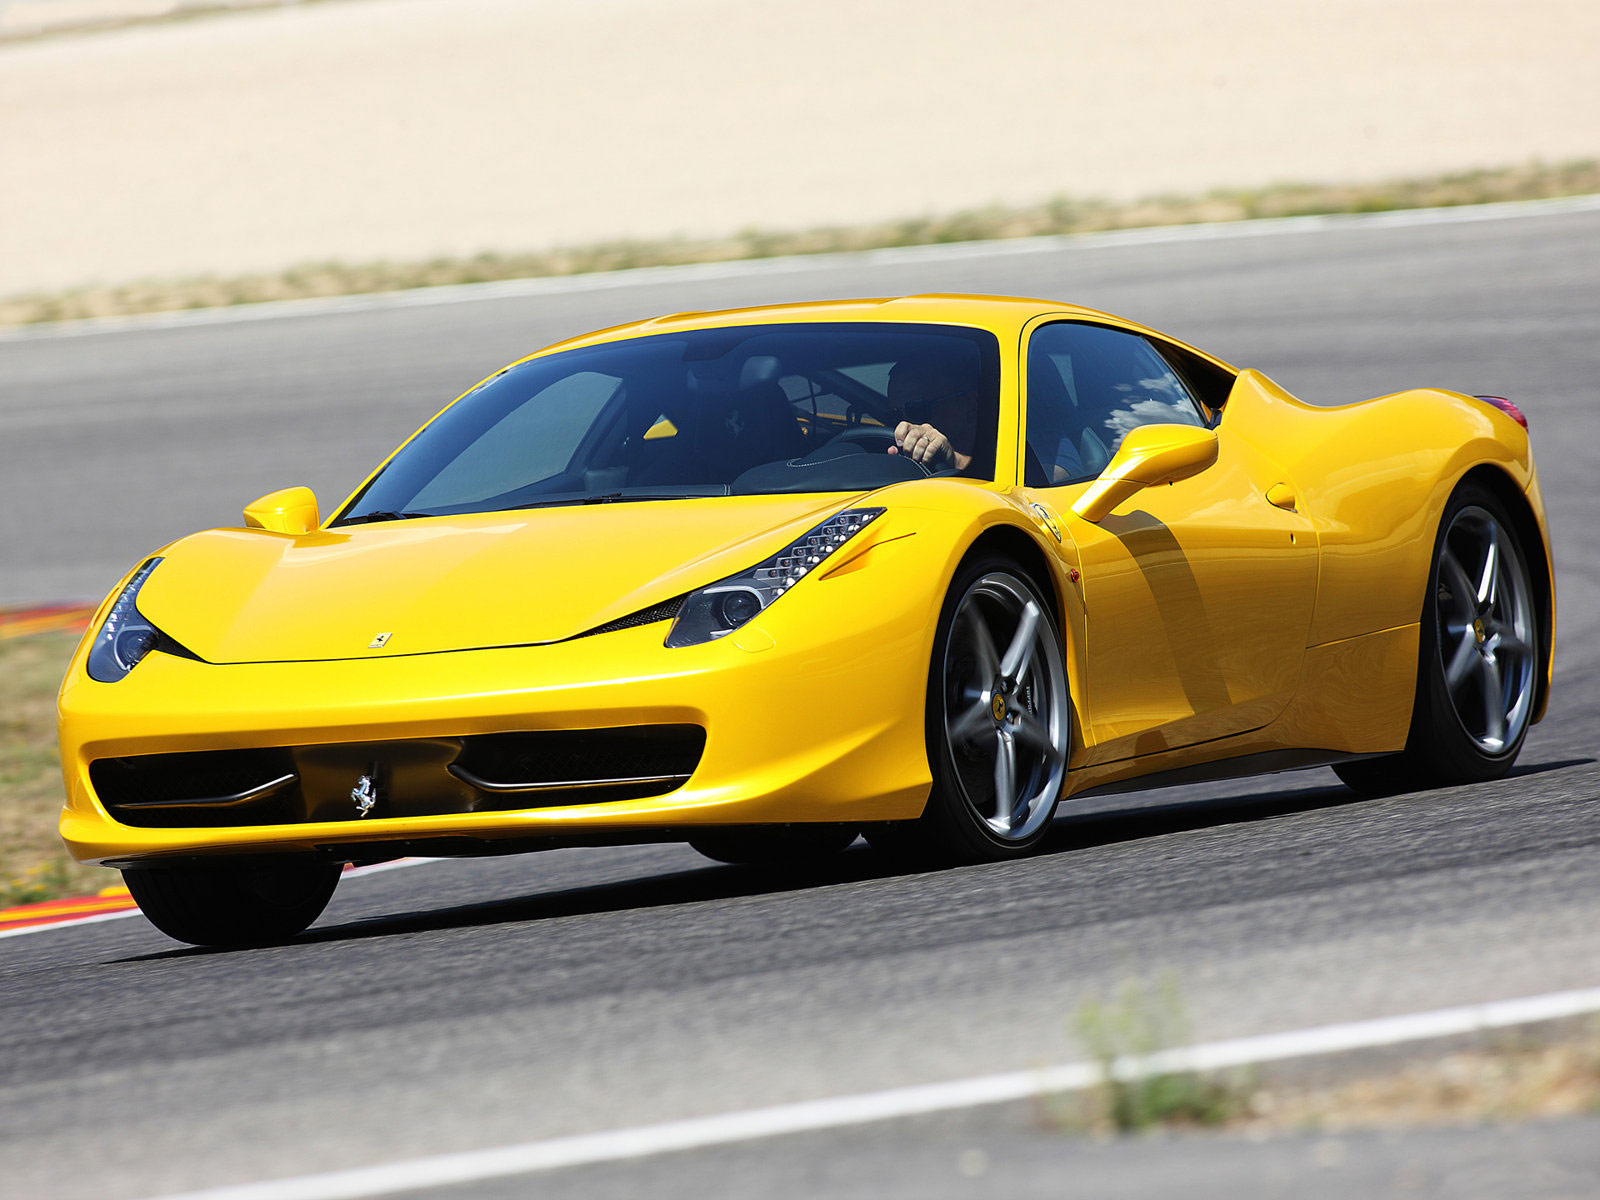 2011 ferrari 458 italia car accident lawyers wallpapers for Wallpaper italia